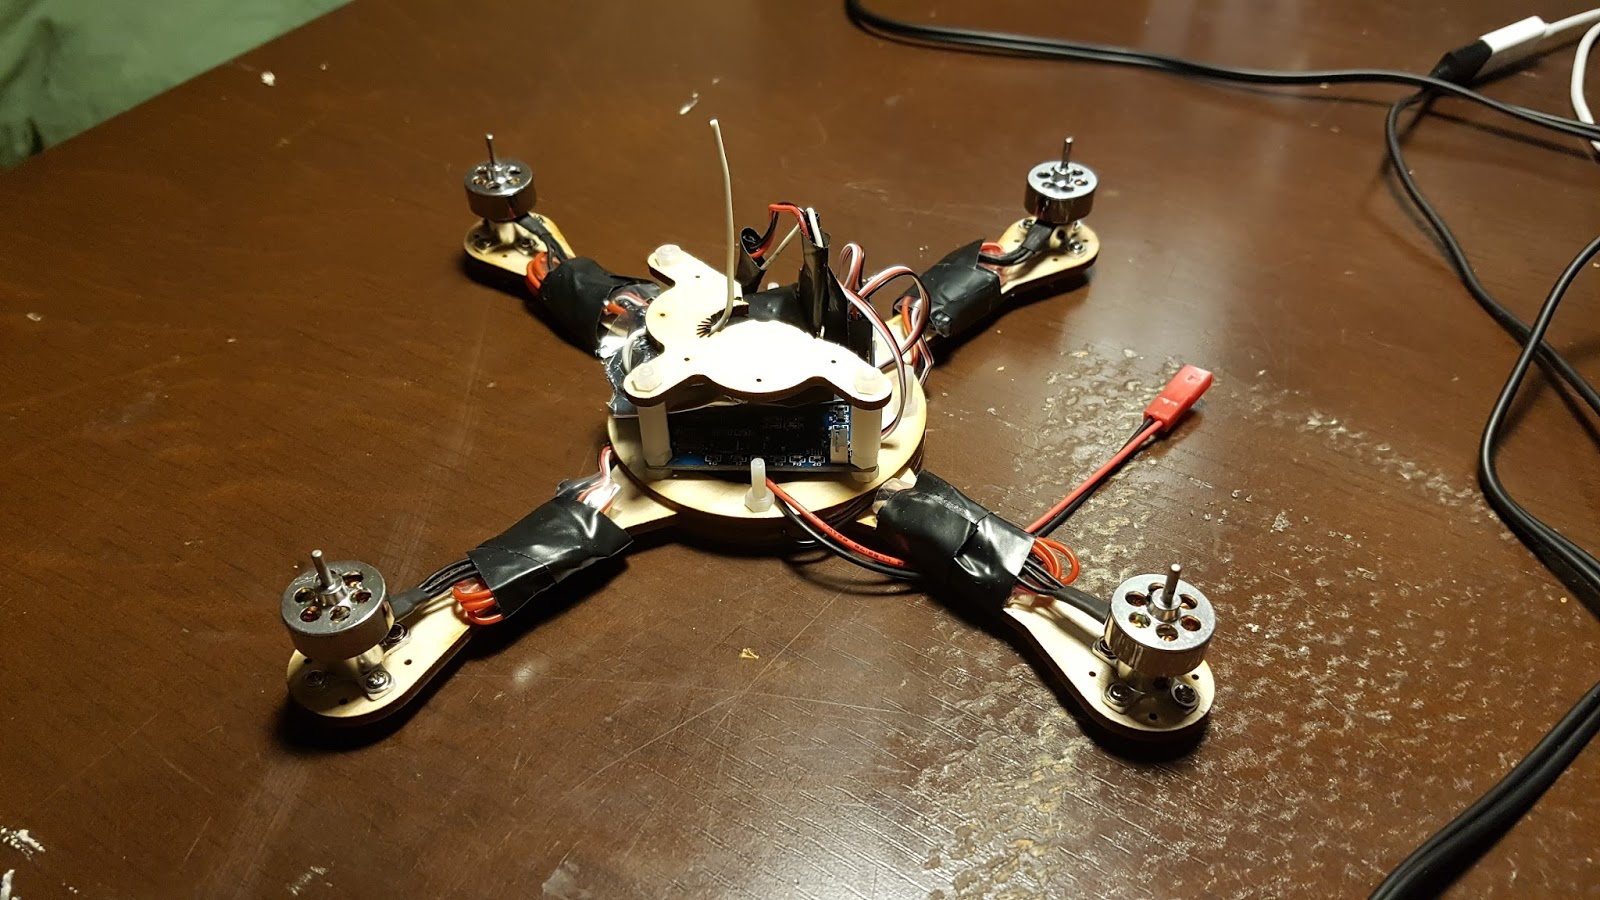 quadcopter wiring diagram multiwii 328p [ 1600 x 900 Pixel ]